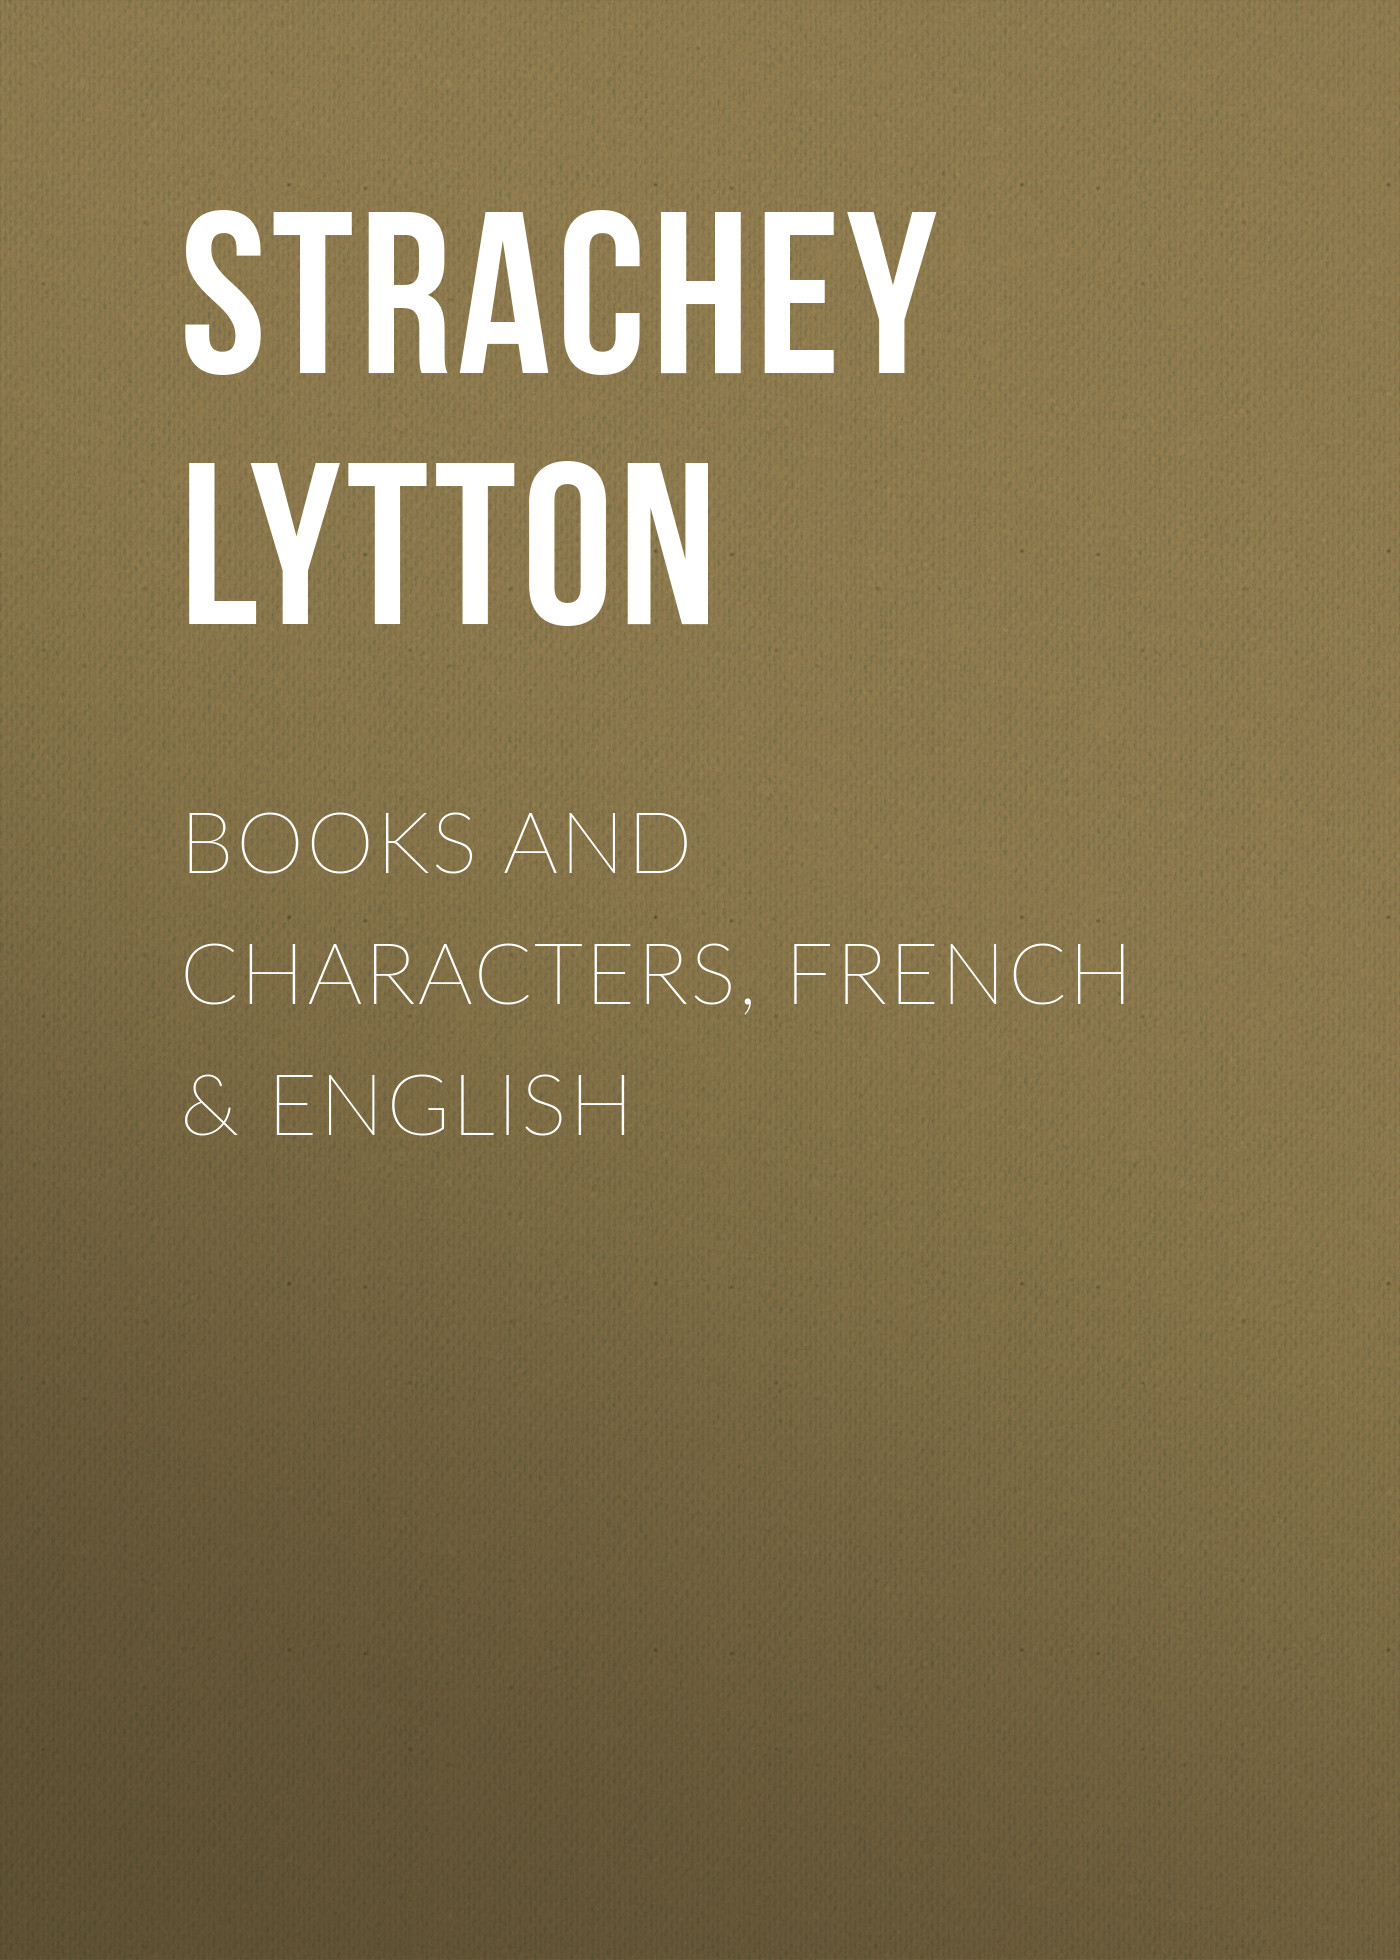 Strachey Lytton Books and Characters, French & English strachey lytton books and characters french